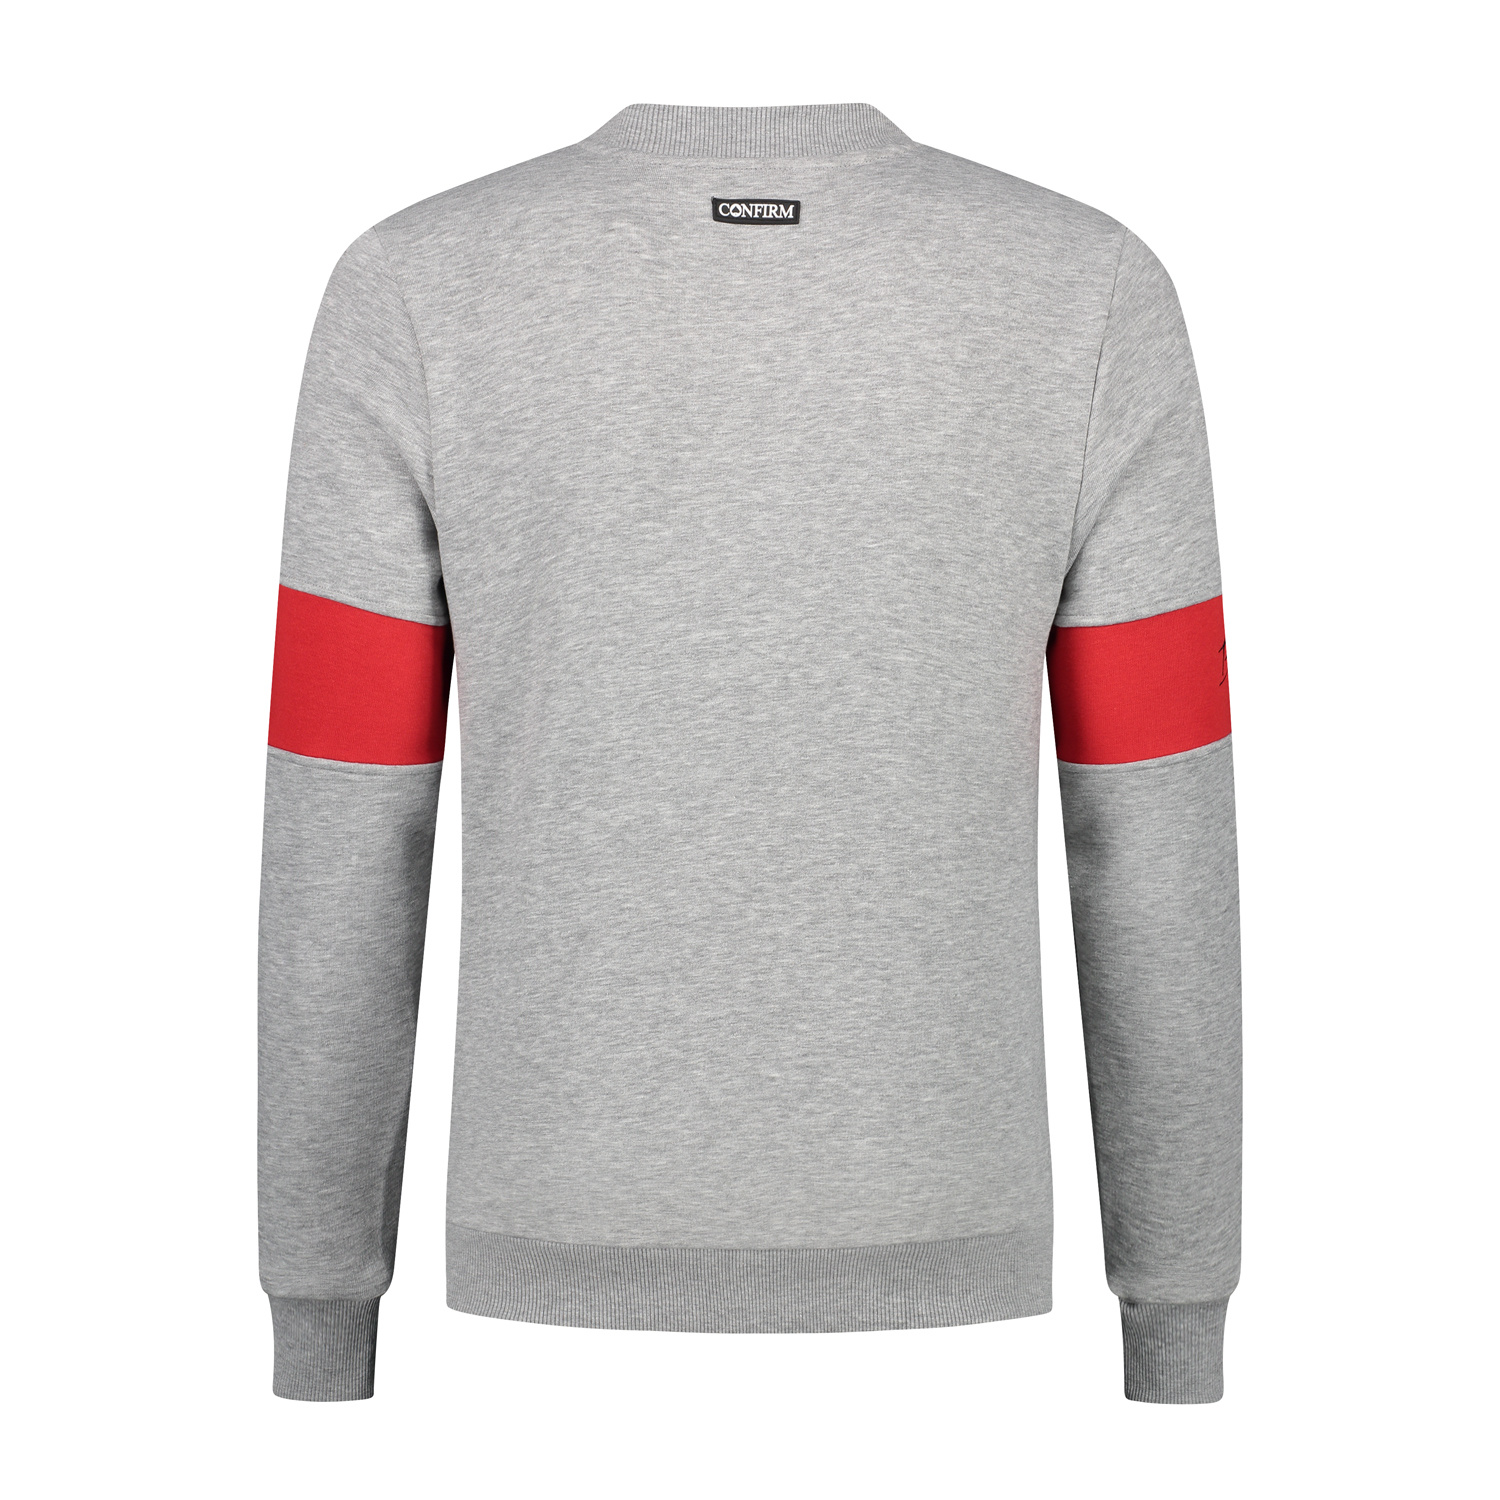 Confirm | Brand Zip Sweater Blind for Love - Grey-3